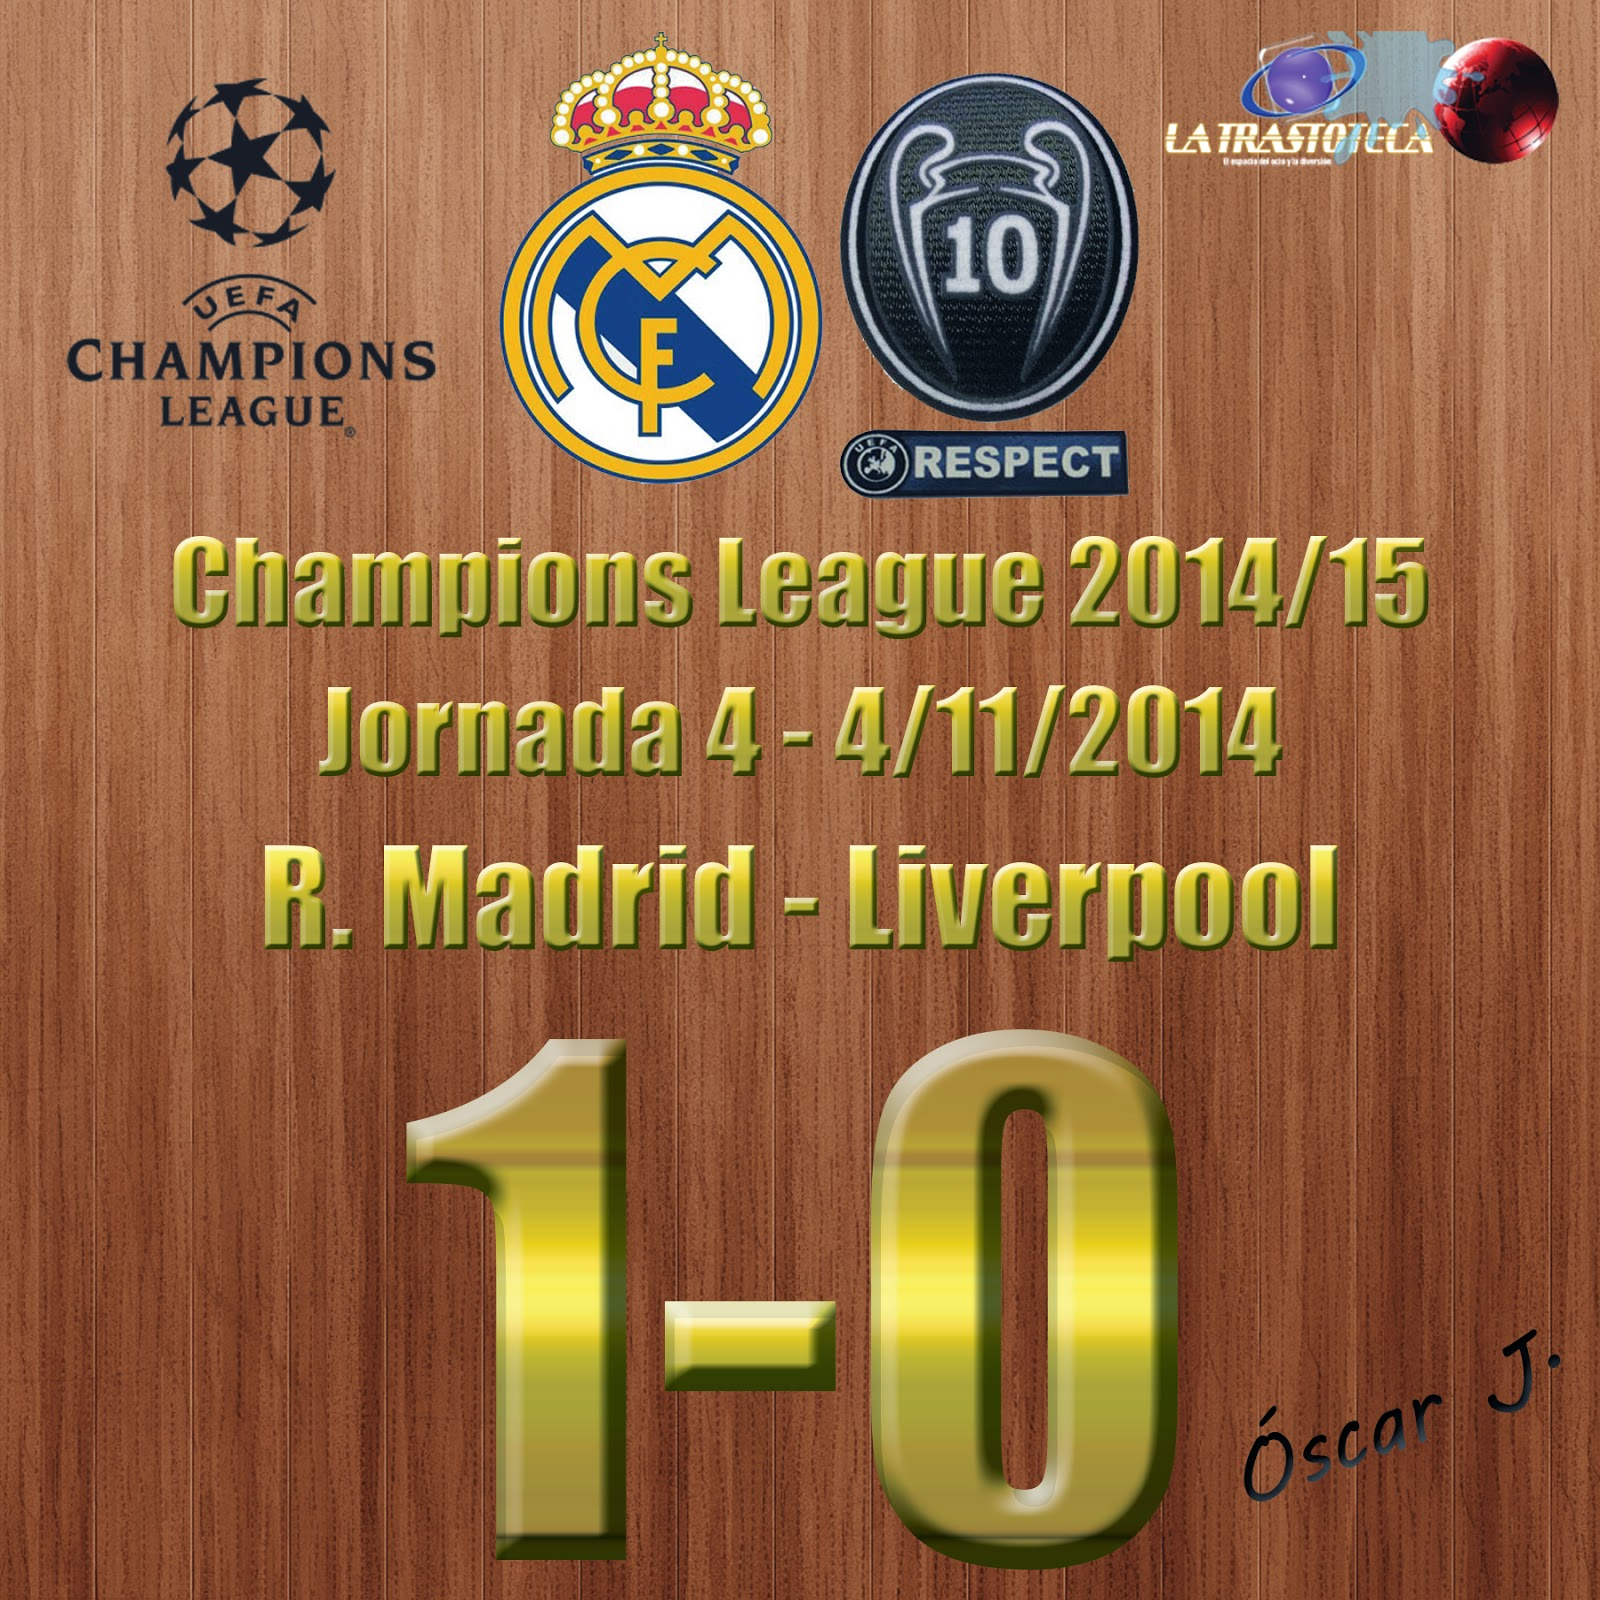 Real Madrid 1-0 Liverpool - Champions League 2014/15 - (4/11/2014). El Real Madrid clasificado matemáticamente para octavos